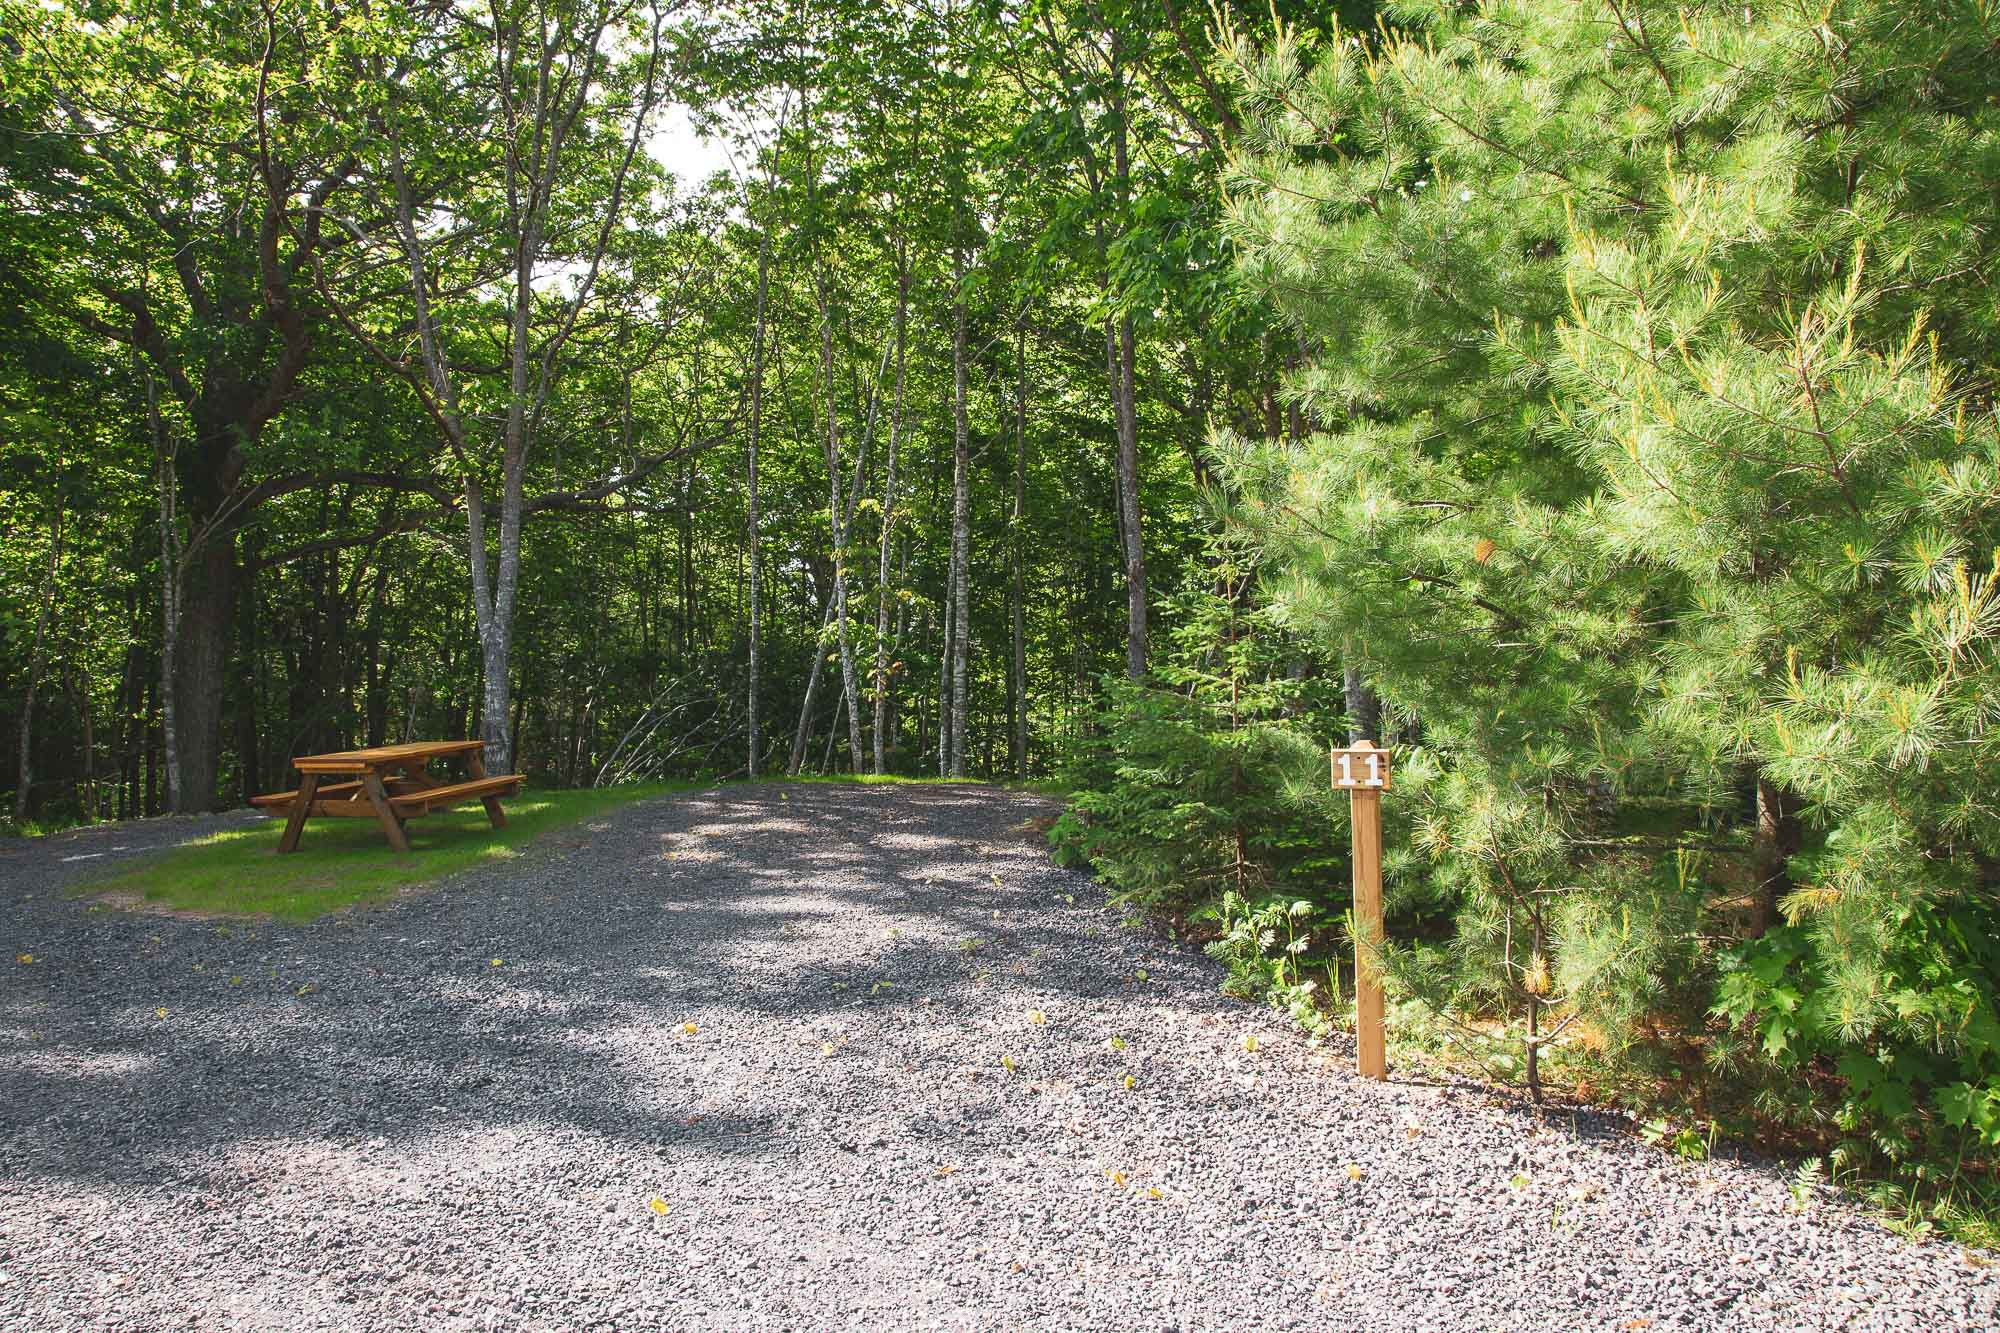 Photo of Campground Site 11 at the Wilderness Resort in Lac La Belle Michigan